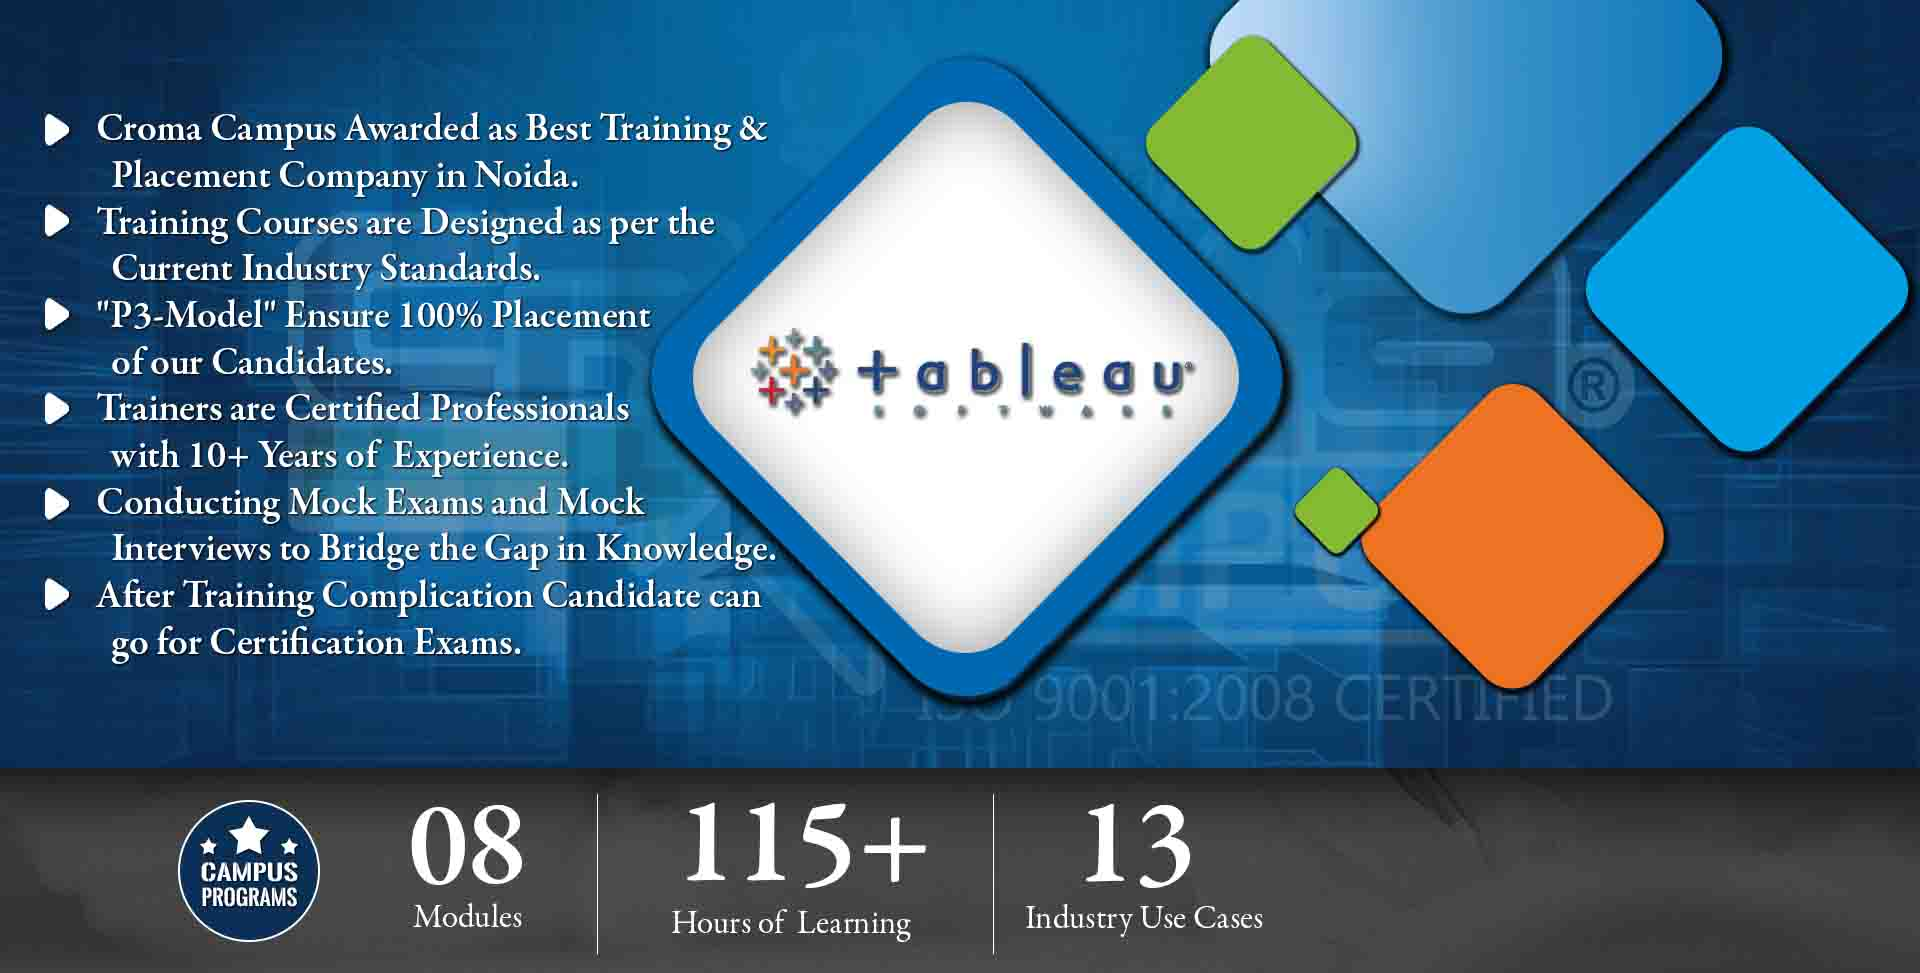 Tableau Training in Delhi NCR- Croma Campus